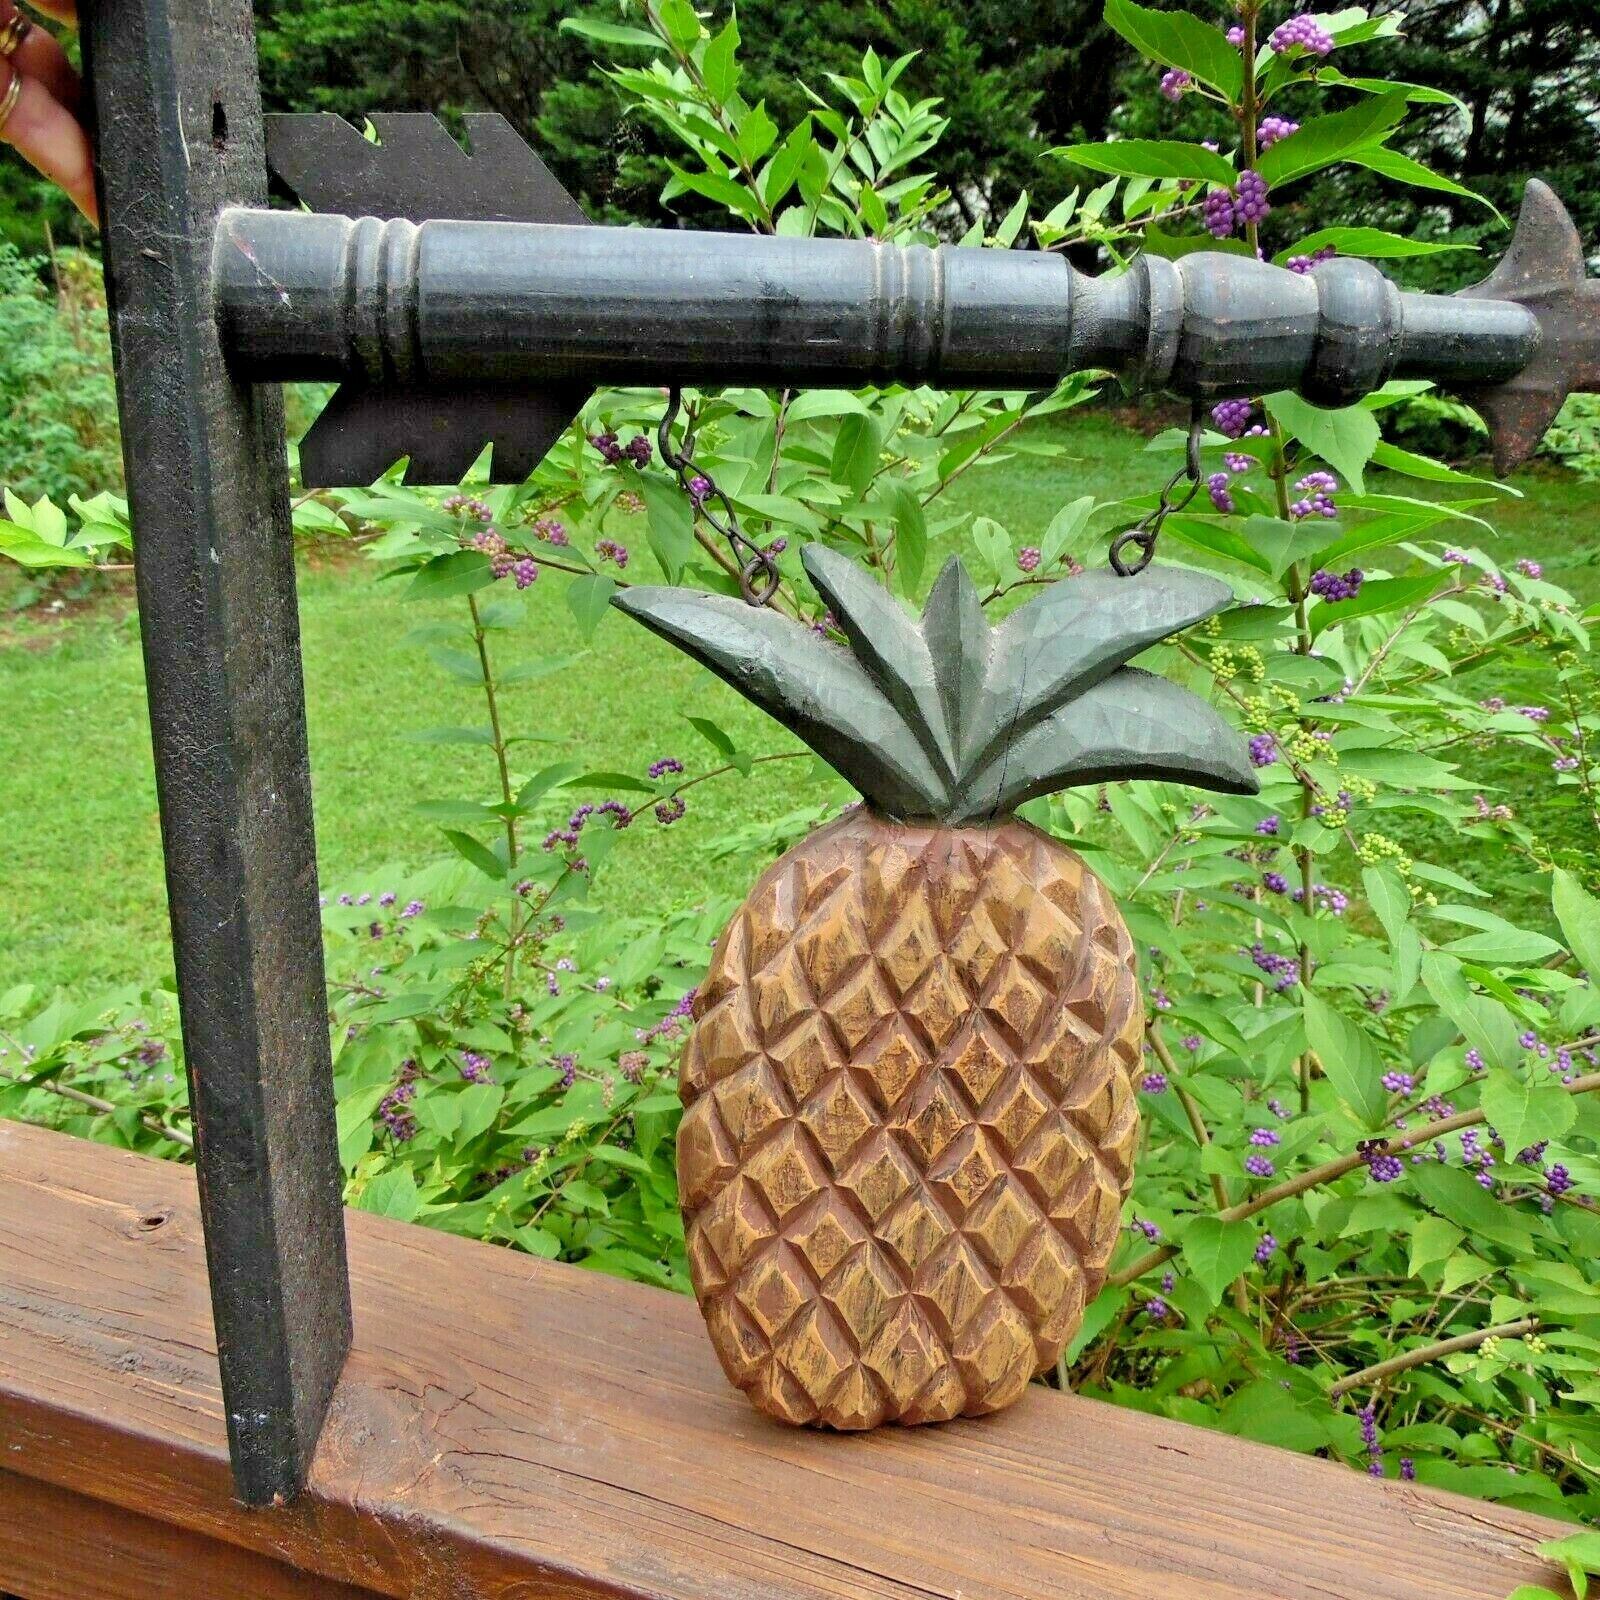 - Wood Holder for Country Arrow Signs with wood pineapple